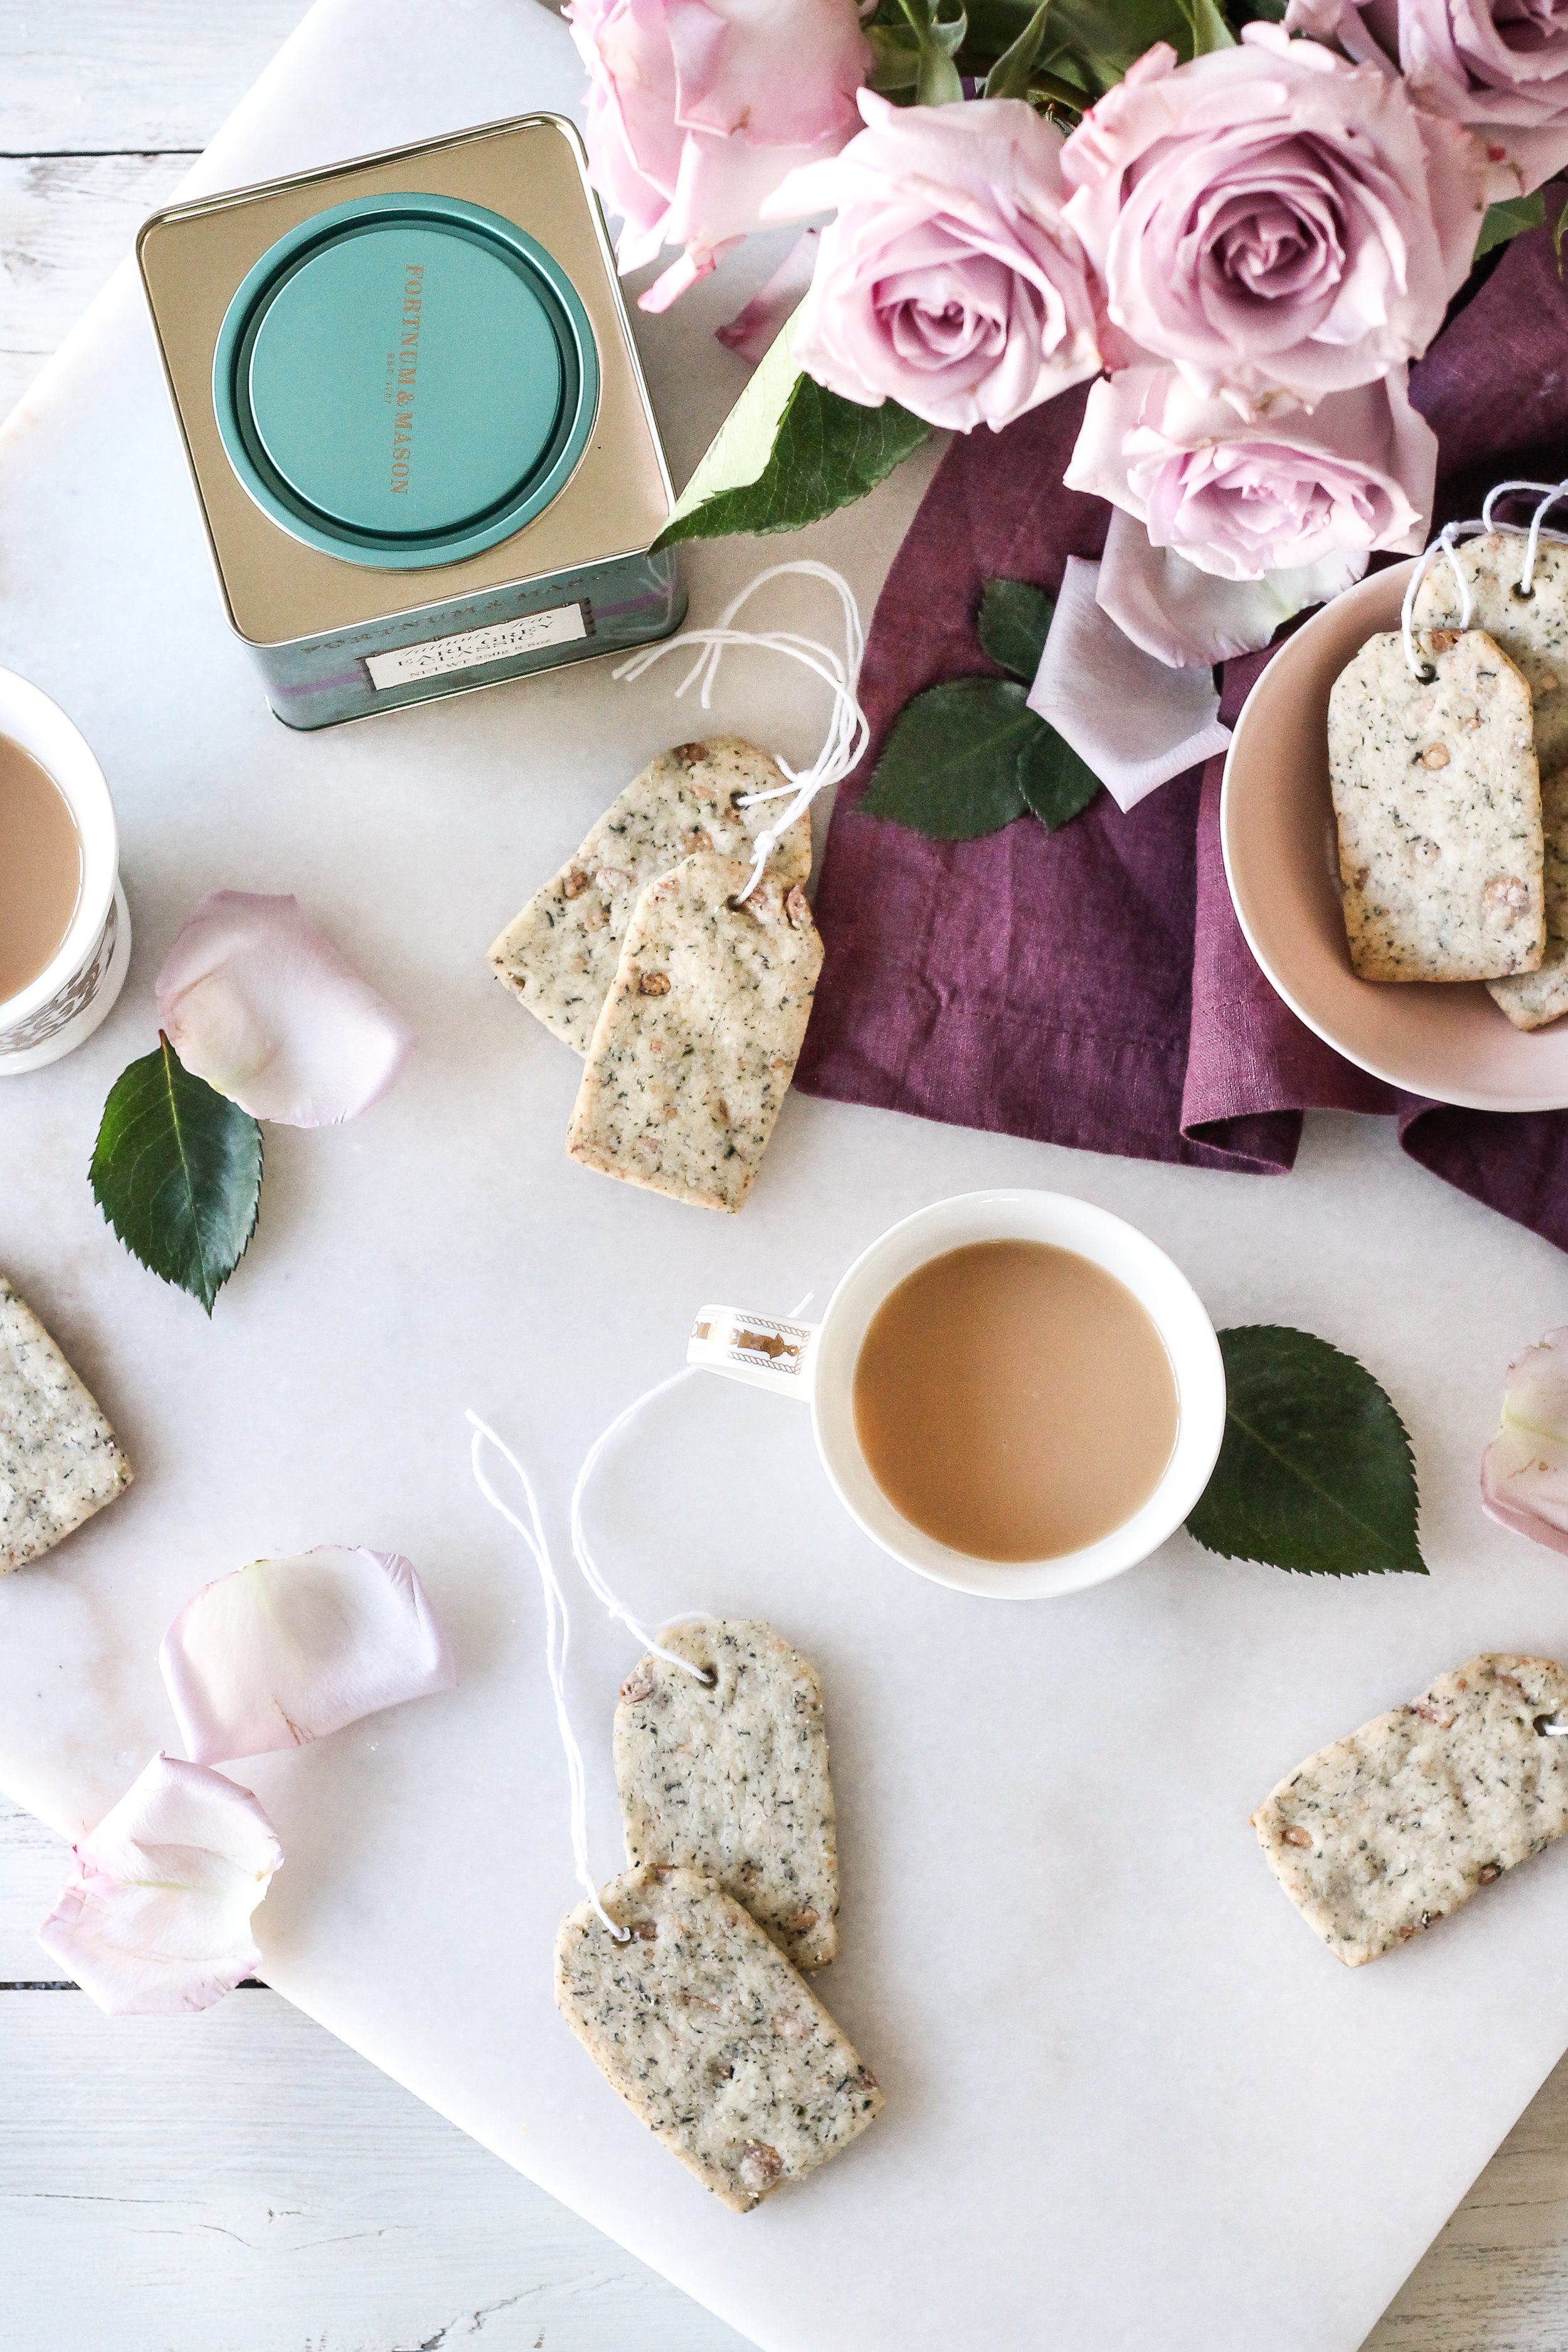 These adorable White Chocolate & Earl Grey Shortbread Tea Cookies make the perfect way to welcome the delicate flavors of spring!  Find the recipe on www.pedanticfoodie.com!